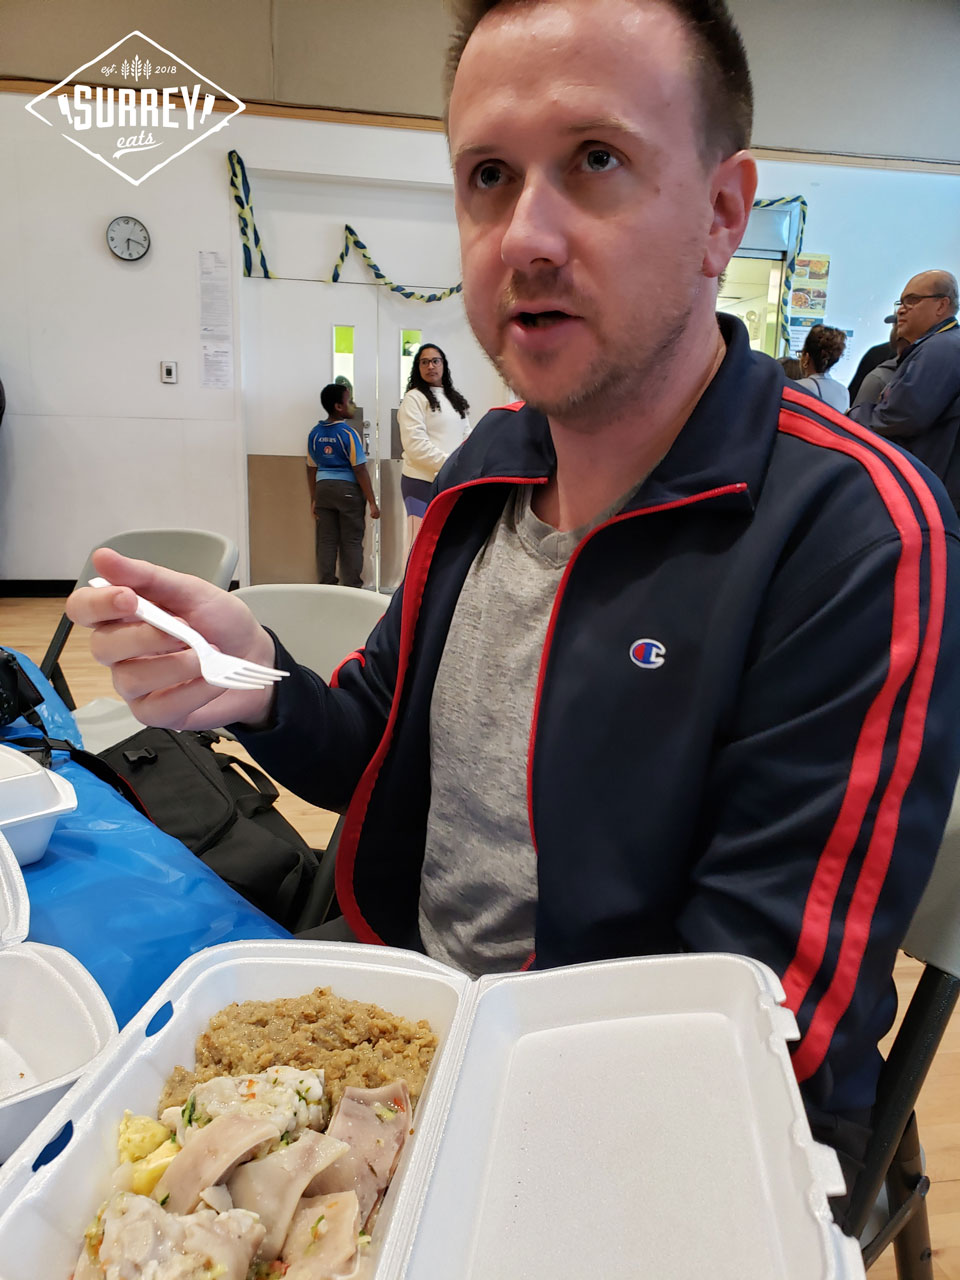 Craig from Surrey Eats asking what the food is